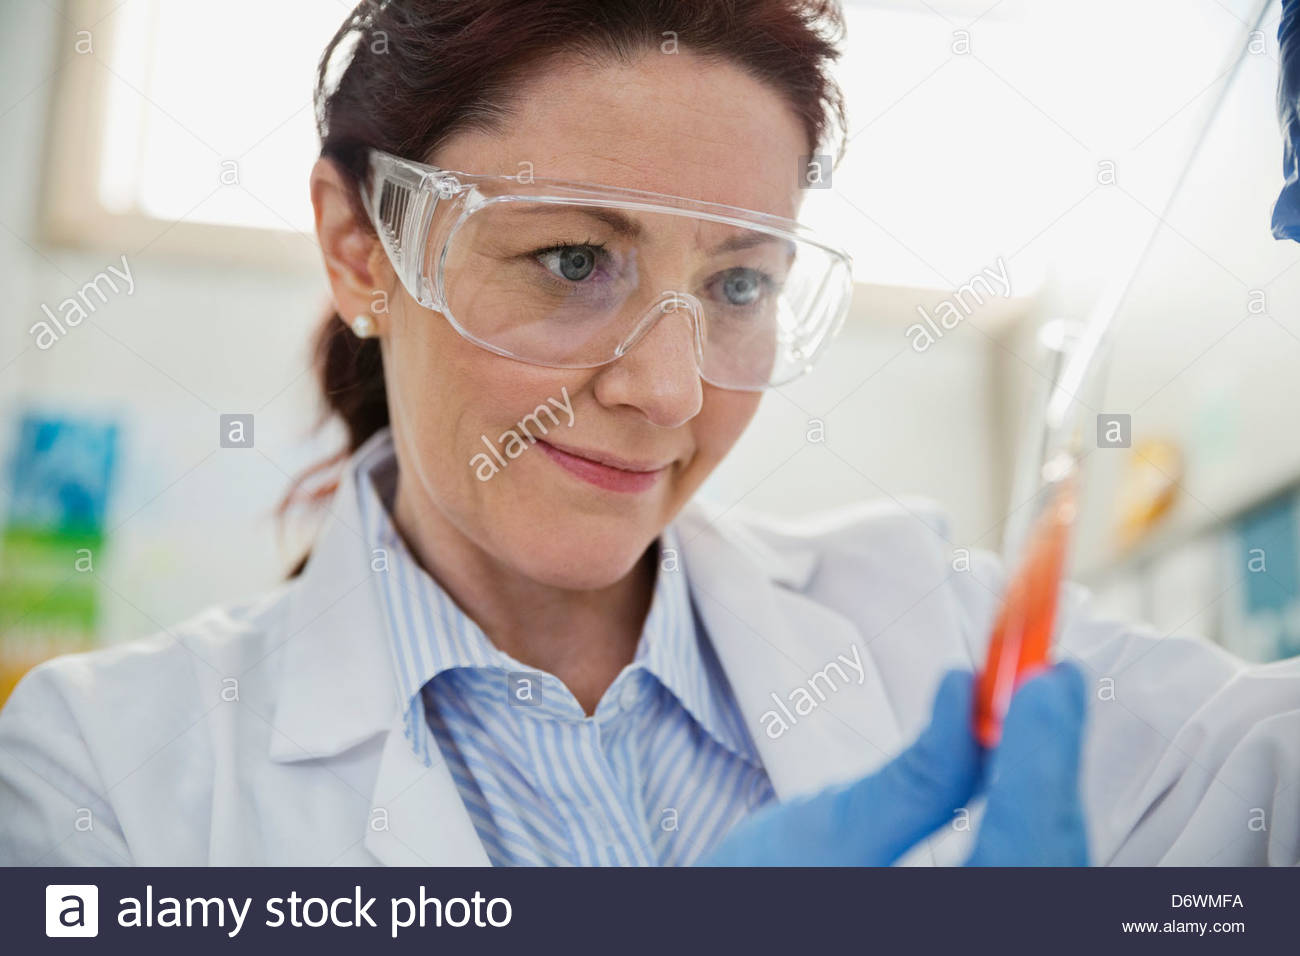 Close-up of female lab technician testing sample in test tube - Stock Image